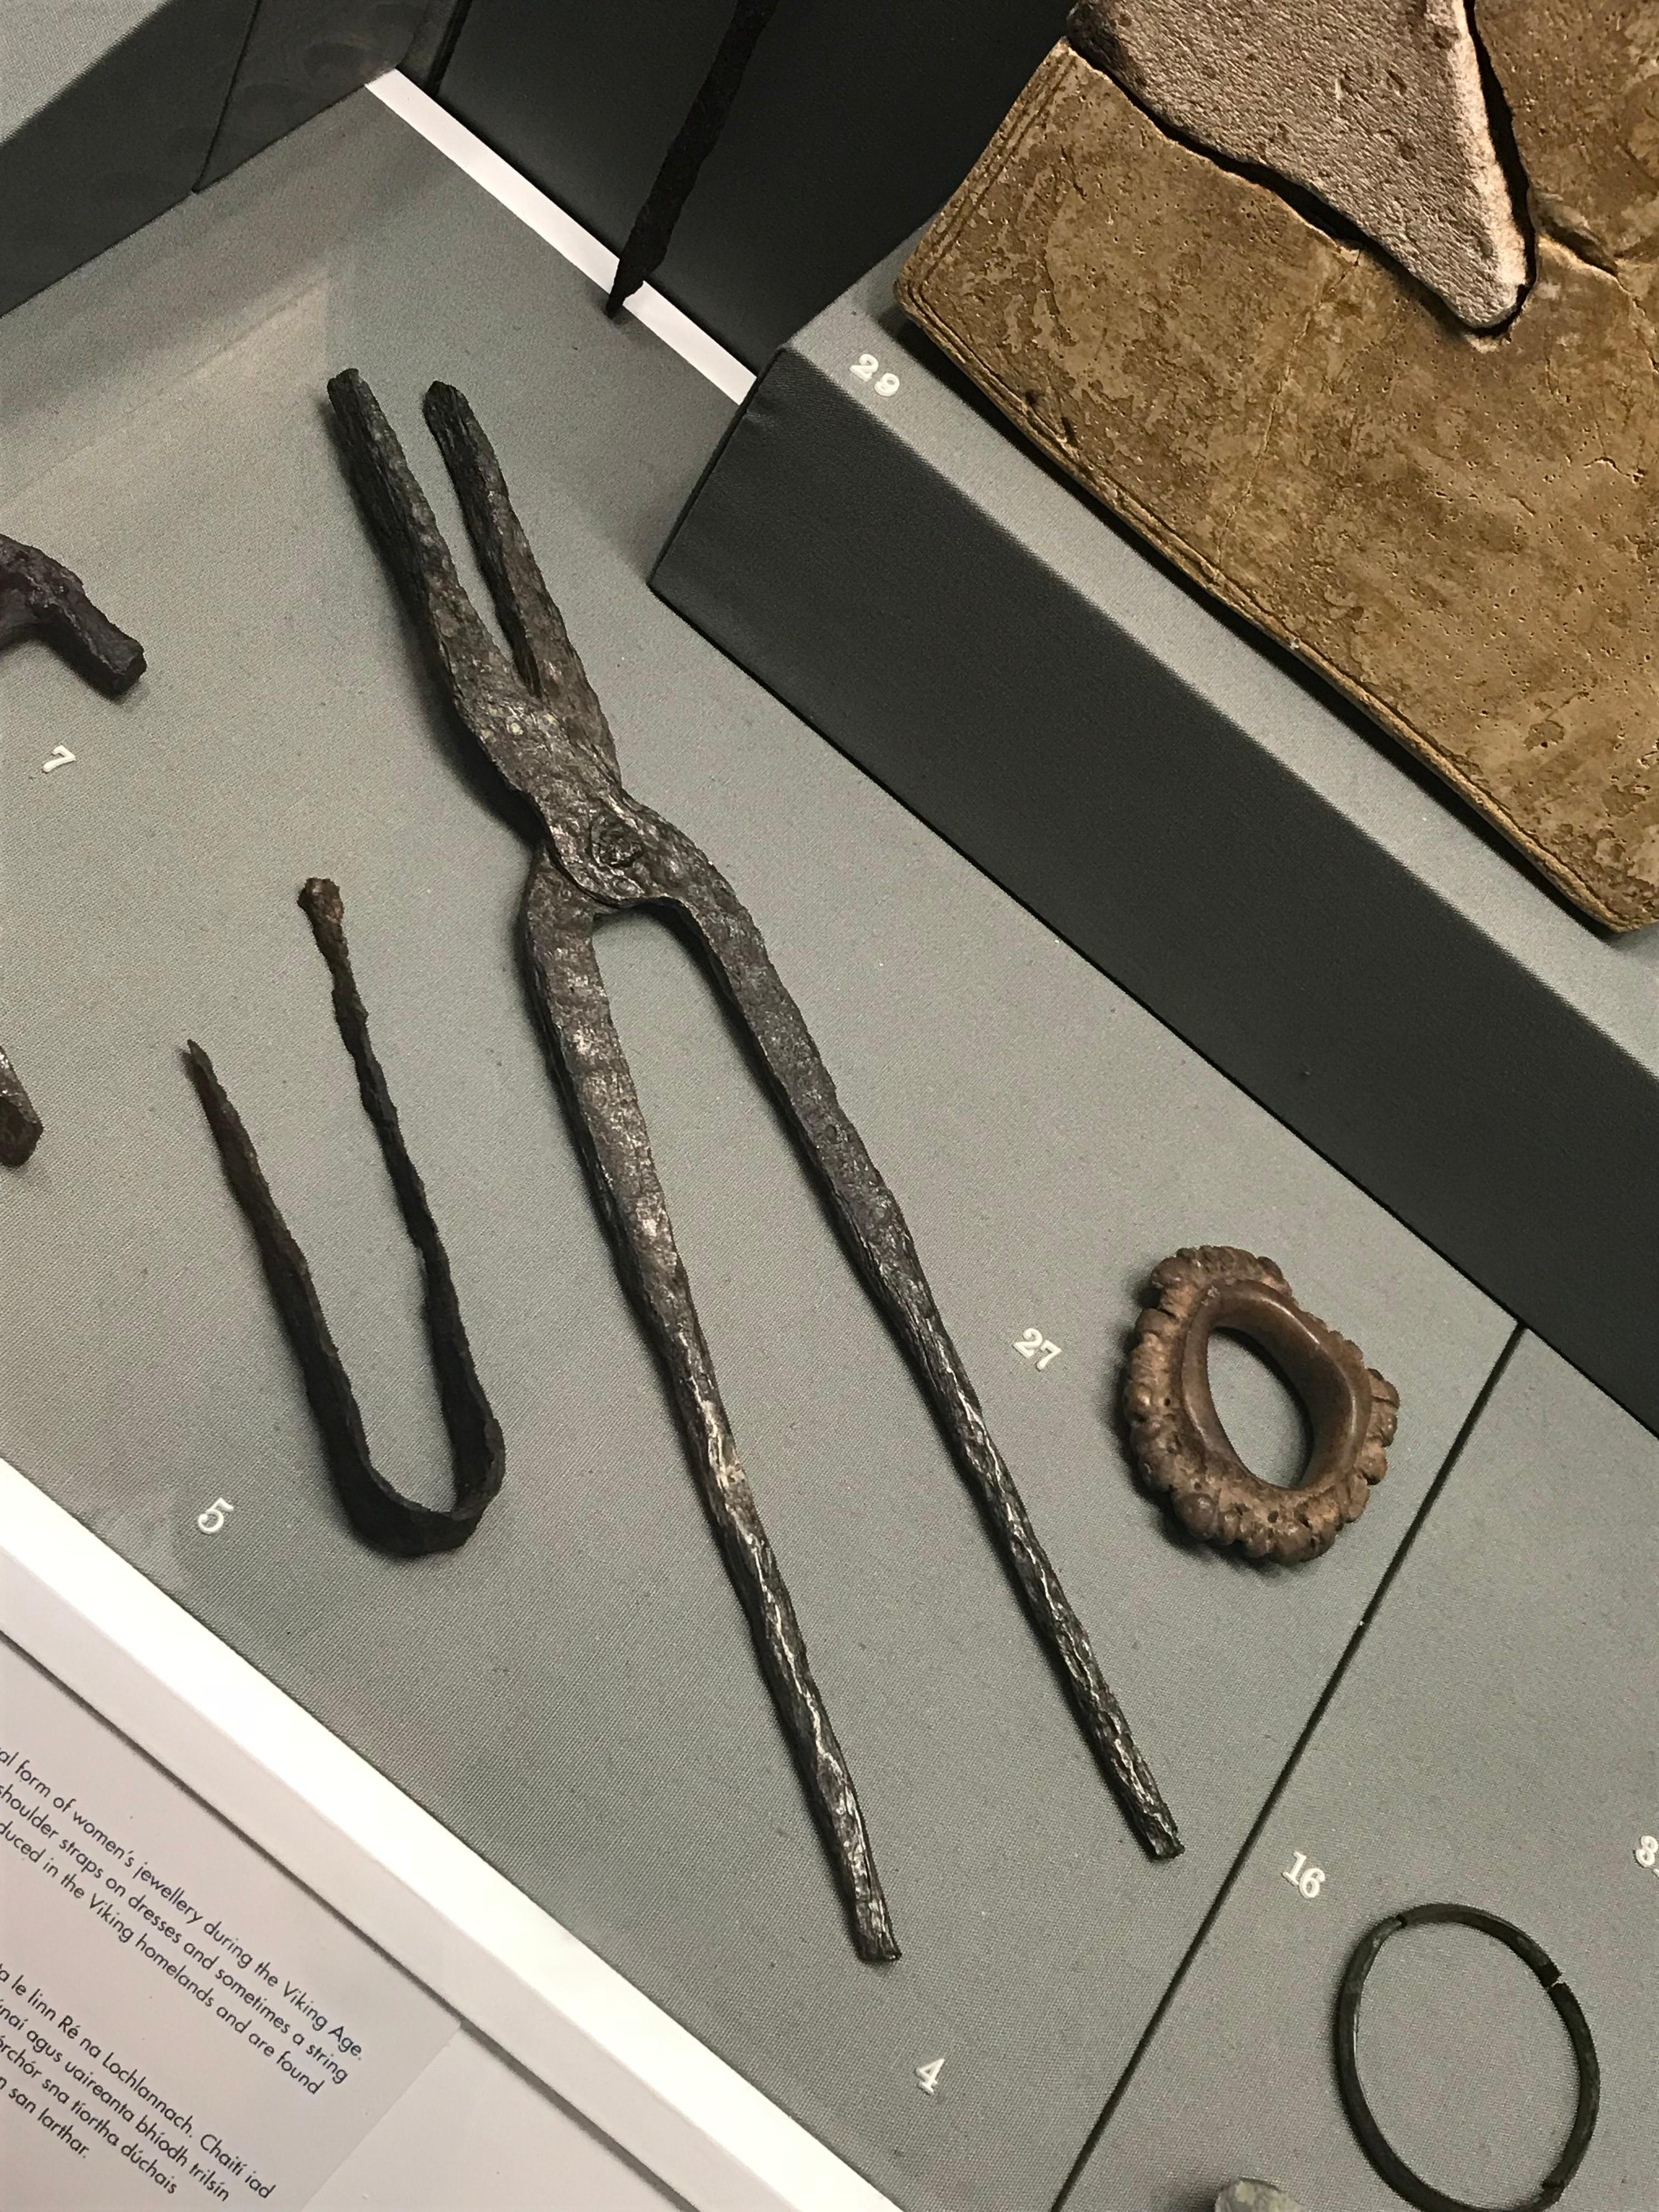 CAPAStudyAbroad_Dublin_Spring2018_From Brandon Mooney - Viking artifacts in the National Archeology Museum.jpeg